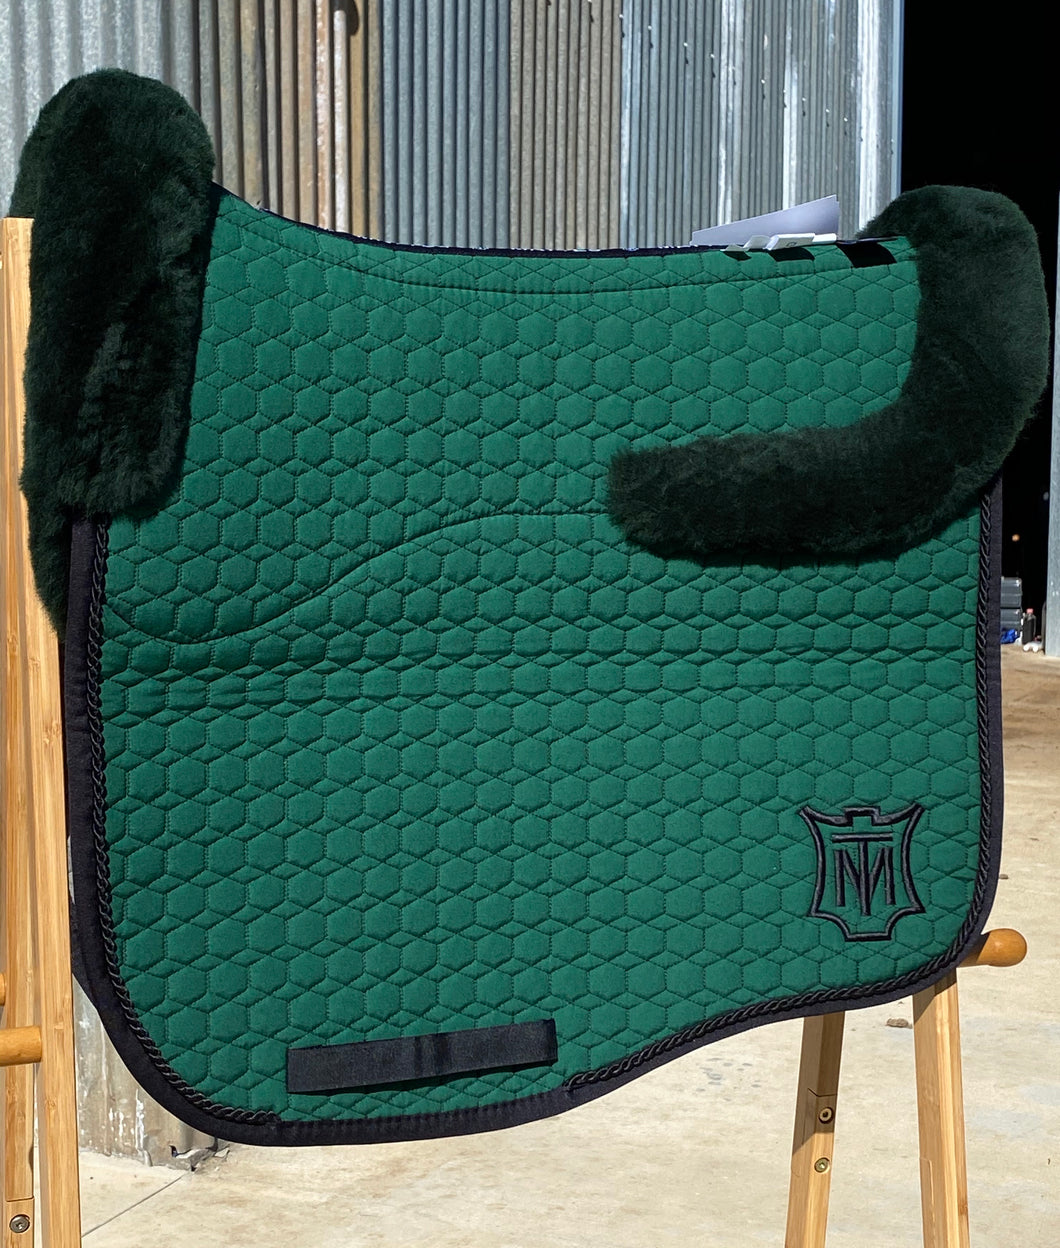 Mattes Large Eurofit Green Dressage Pad Top and Bottom Fleece